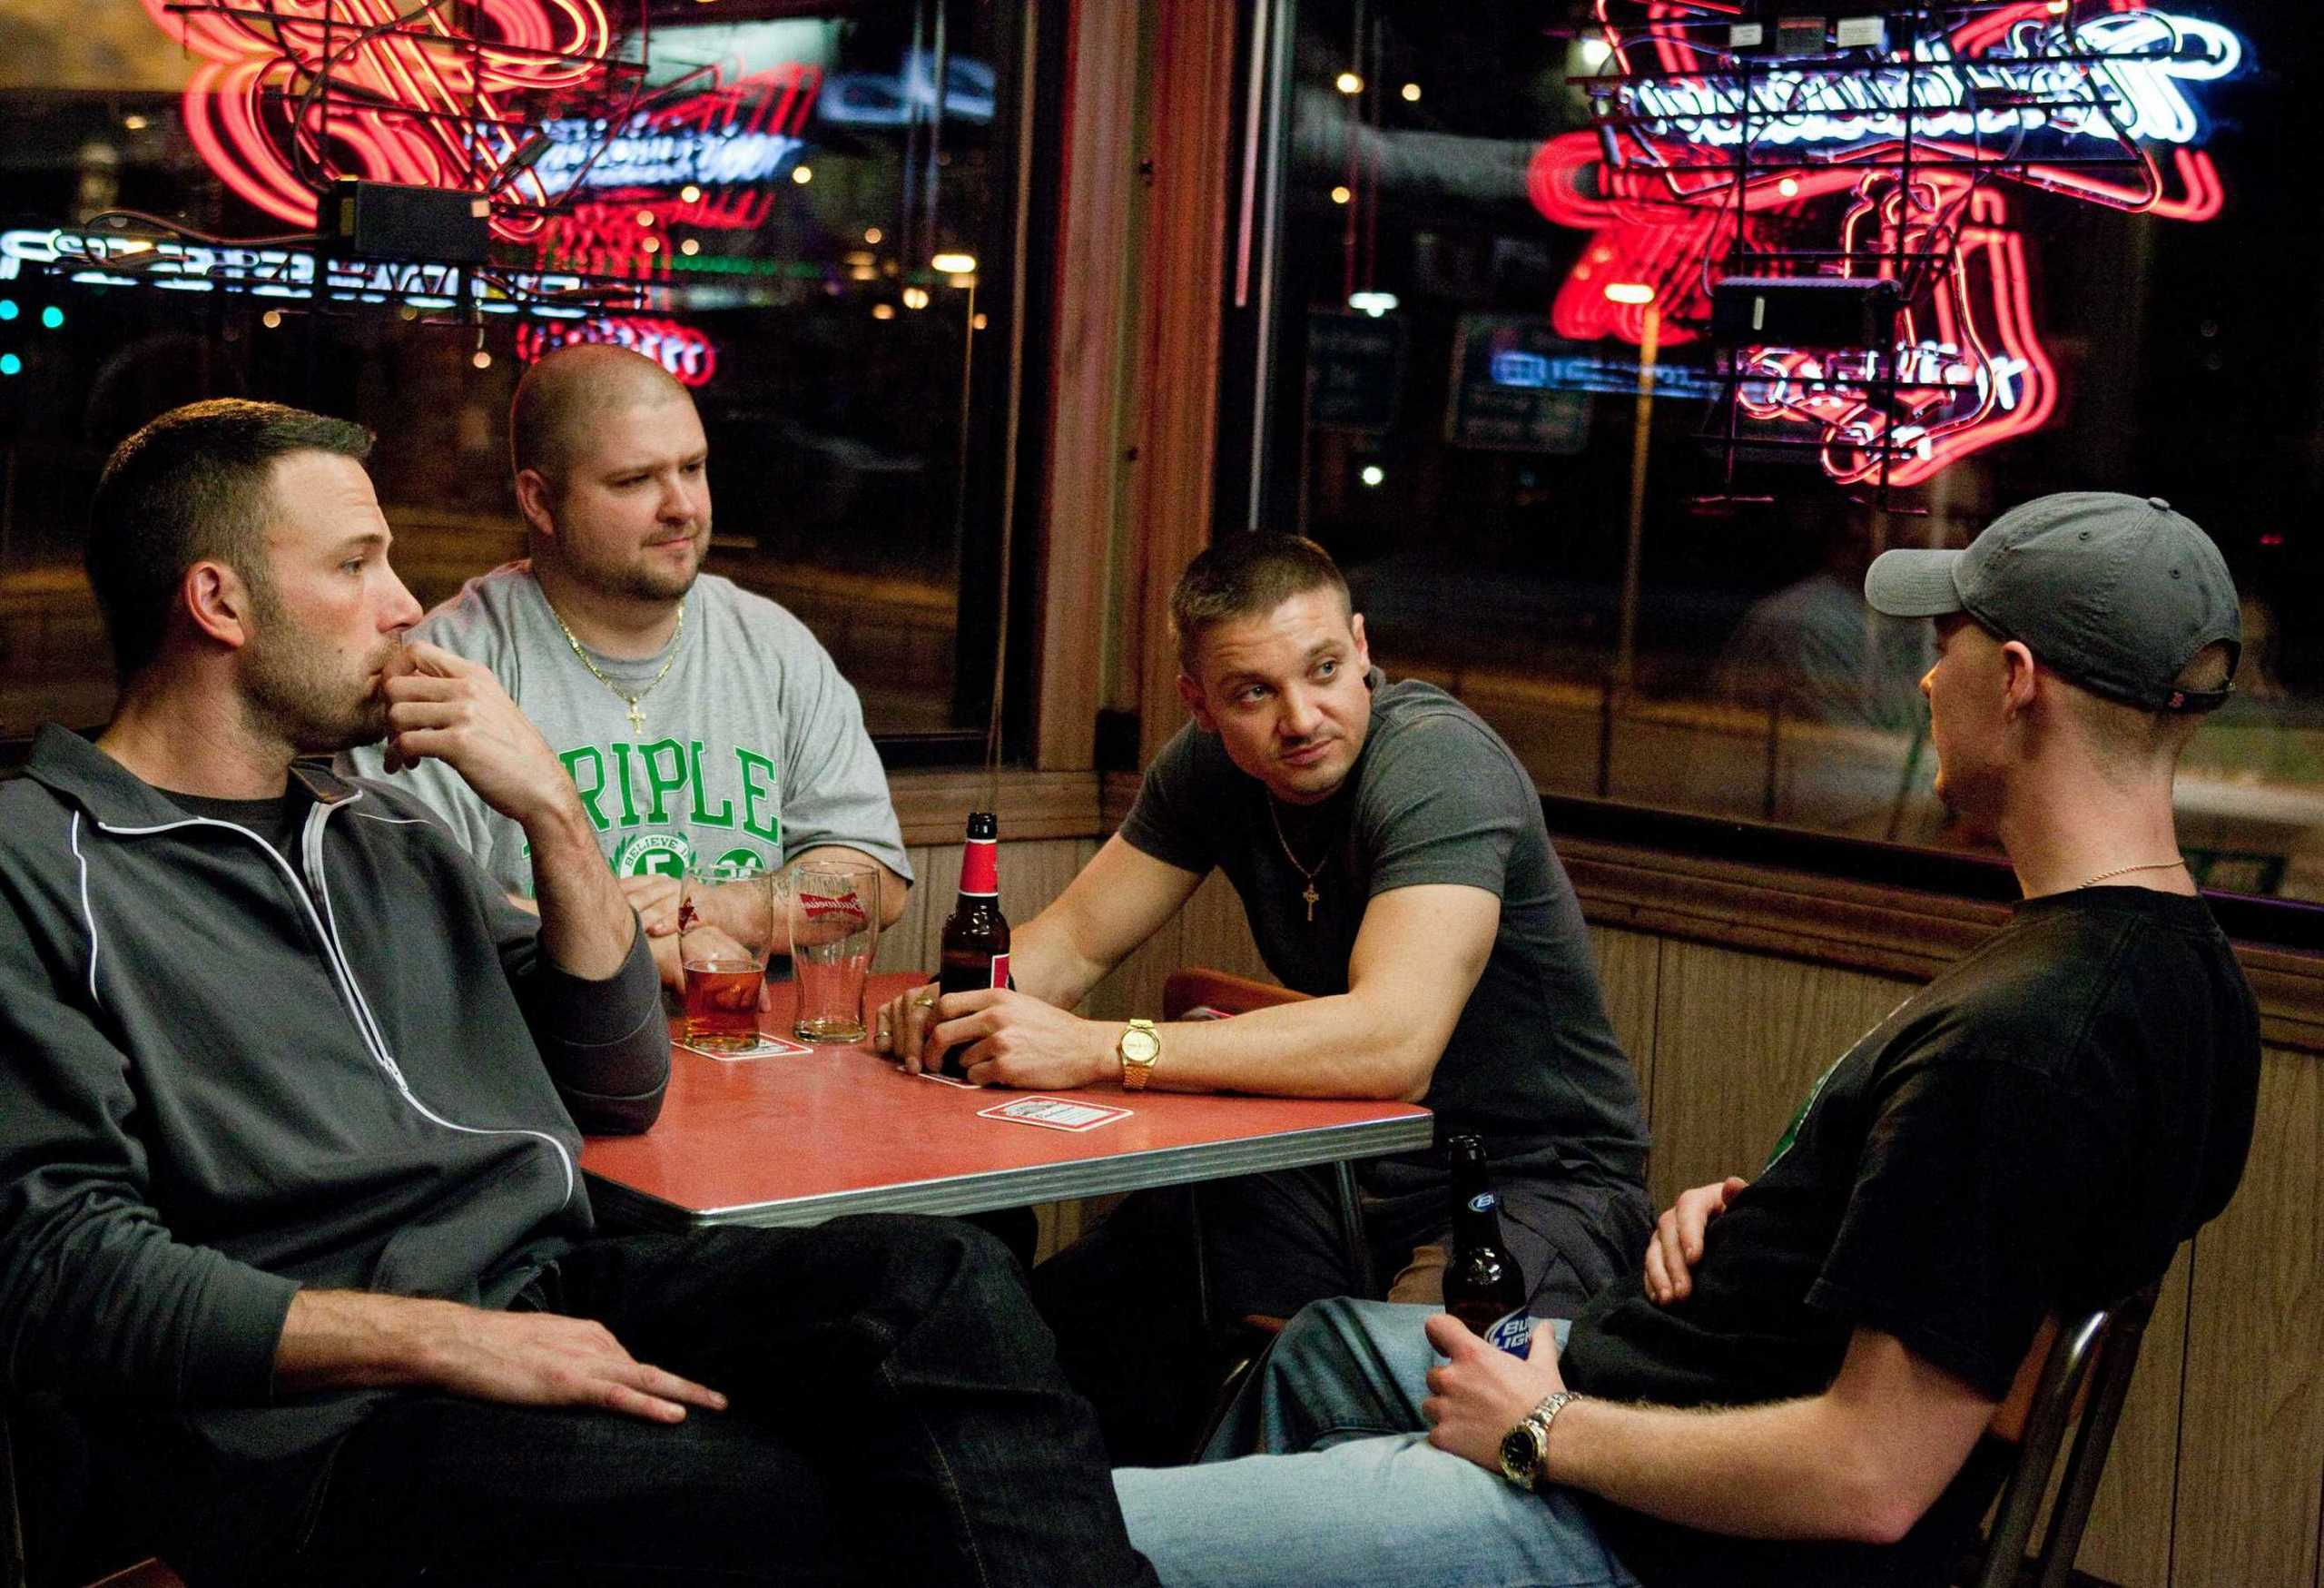 Jeremy Renner, Ben Affleck, Owen Burke & Slaine in The Town